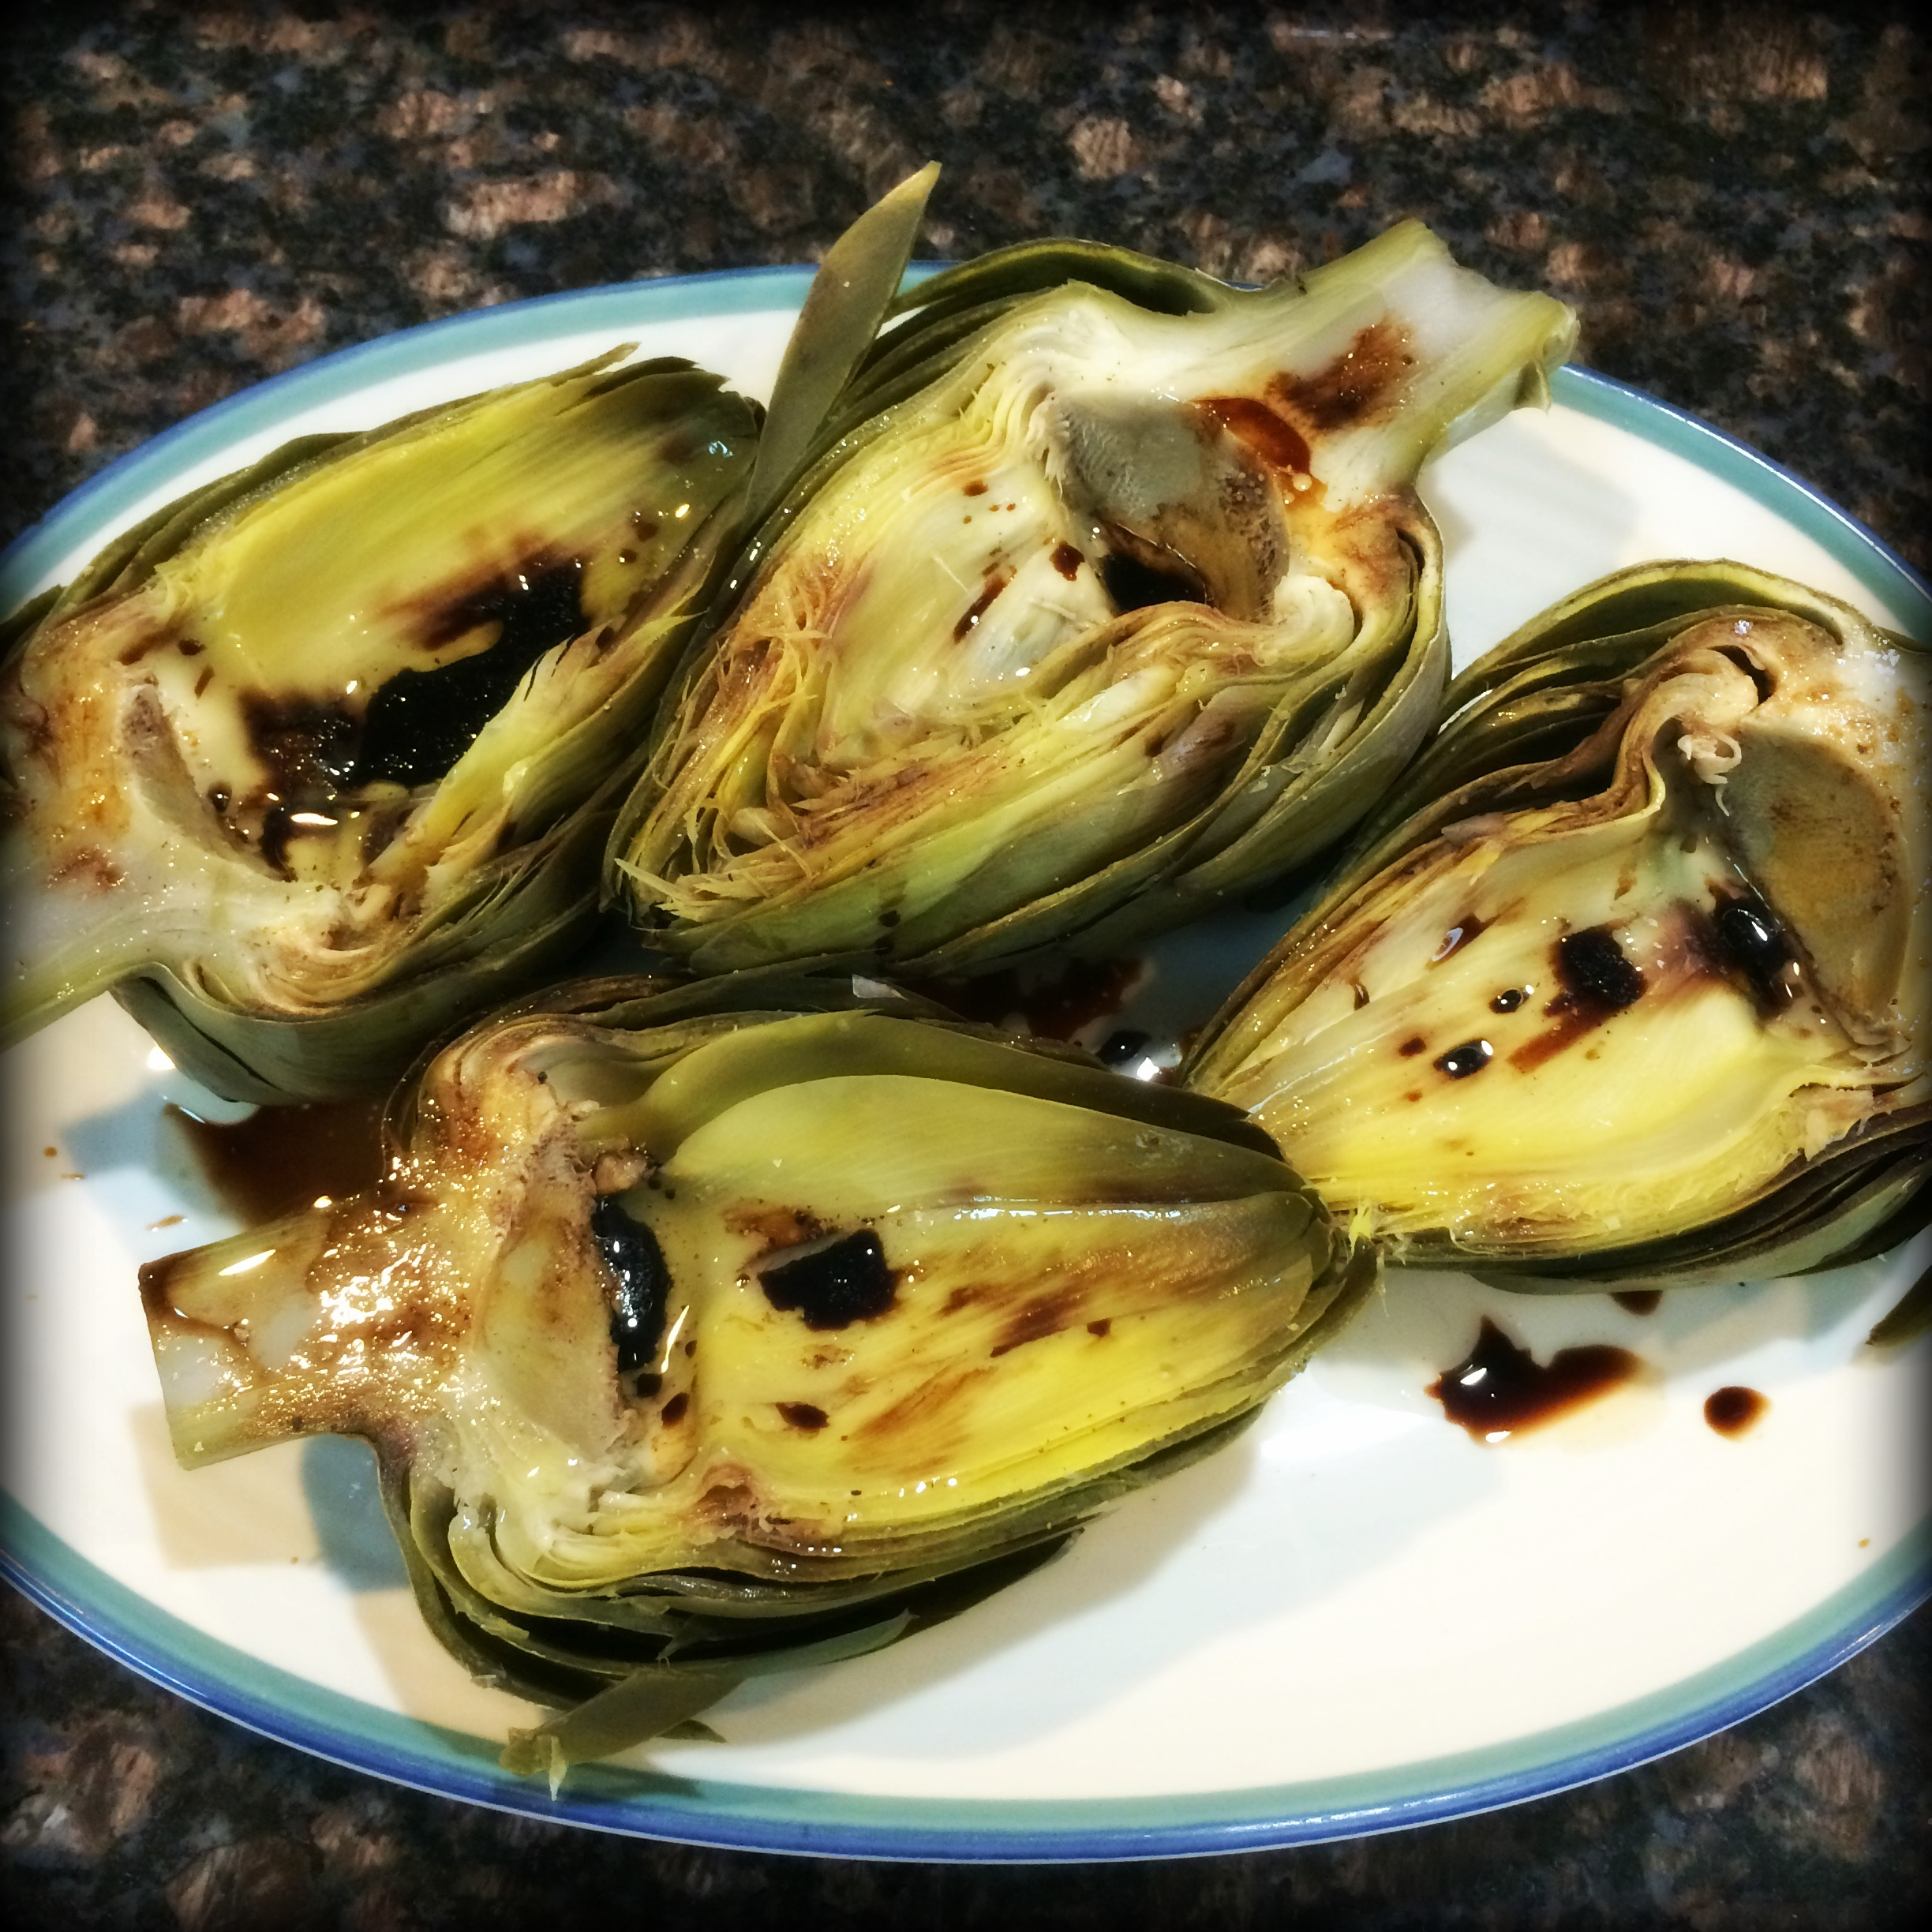 Marinated Grilled Artichokes with Mayo Dijon Sauce